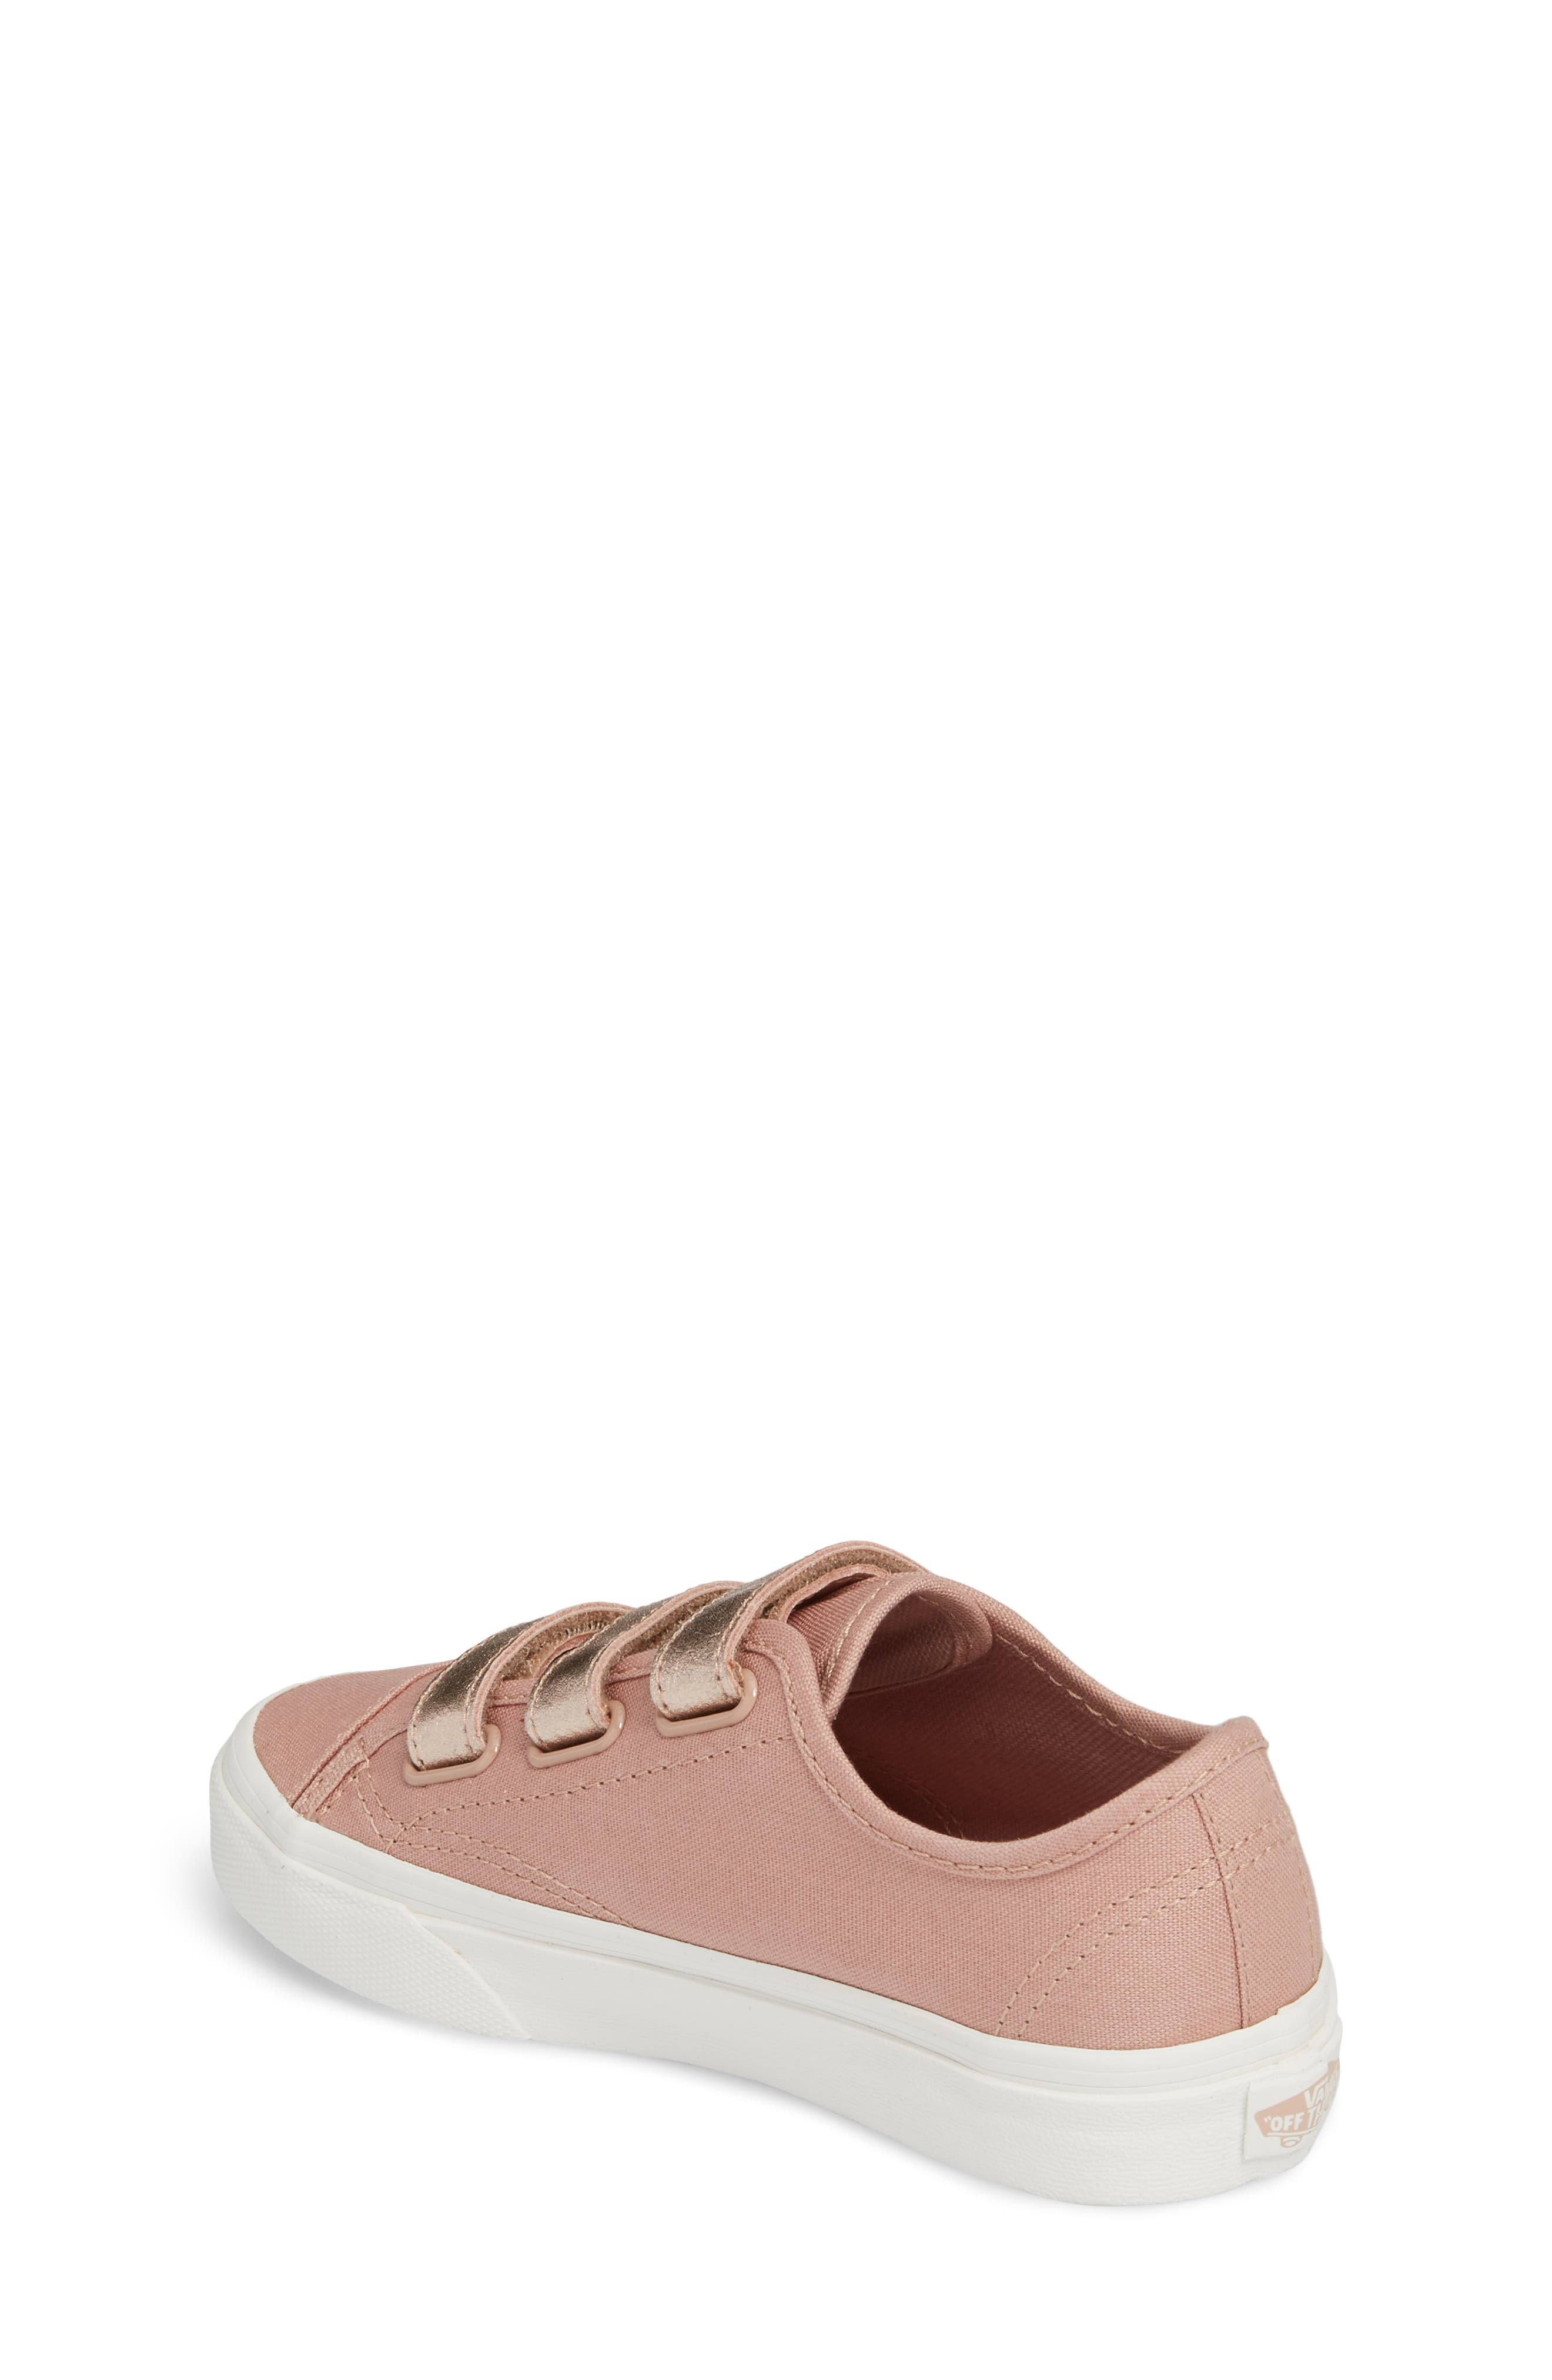 Style 23V Sneaker,                             Alternate thumbnail 2, color,                             Two-Tone Rose Gold Metallic